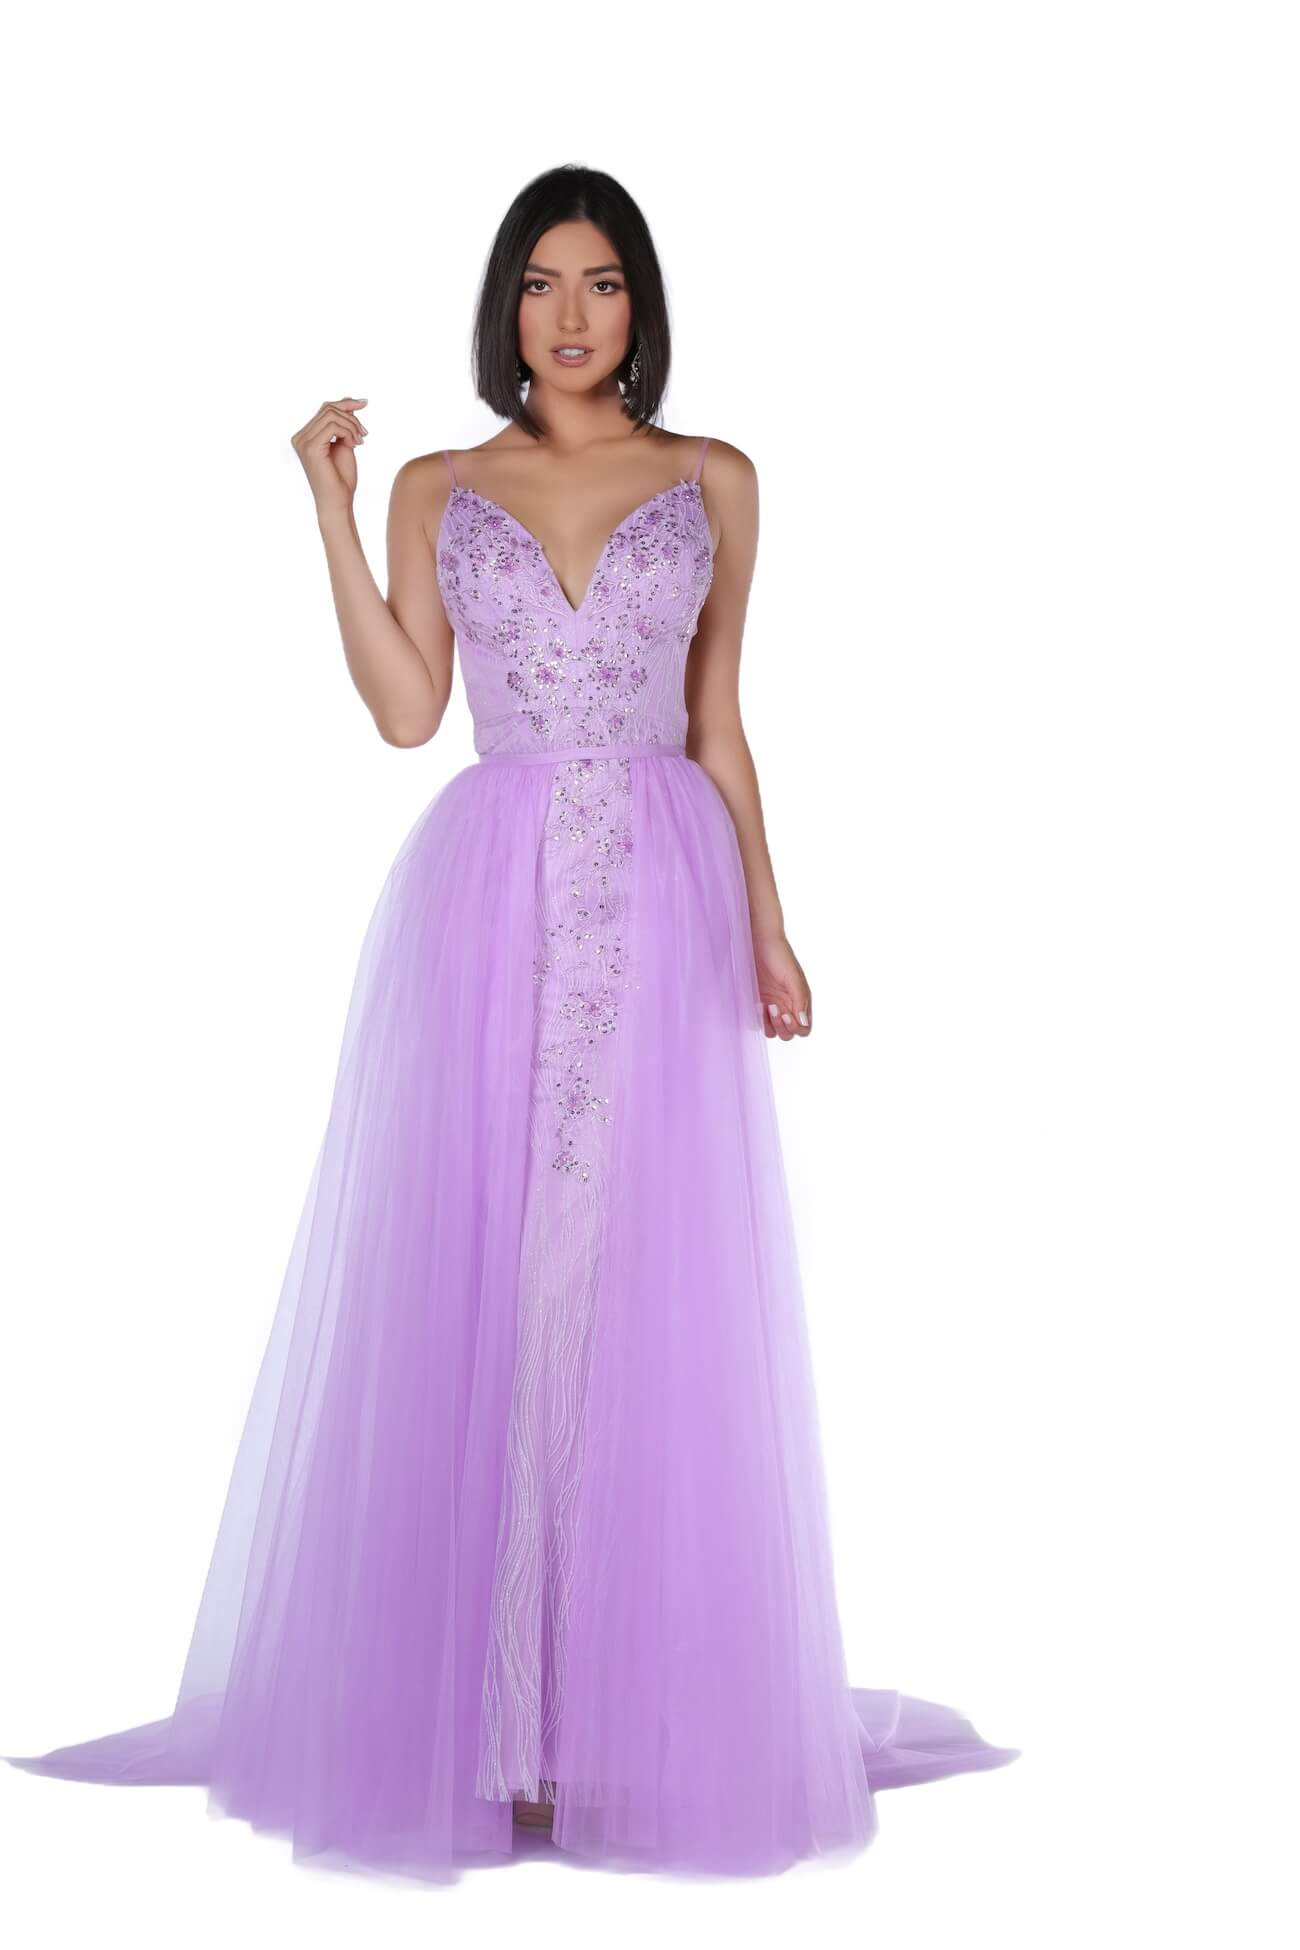 Queenly size 2 Vienna Purple Train evening gown/formal dress